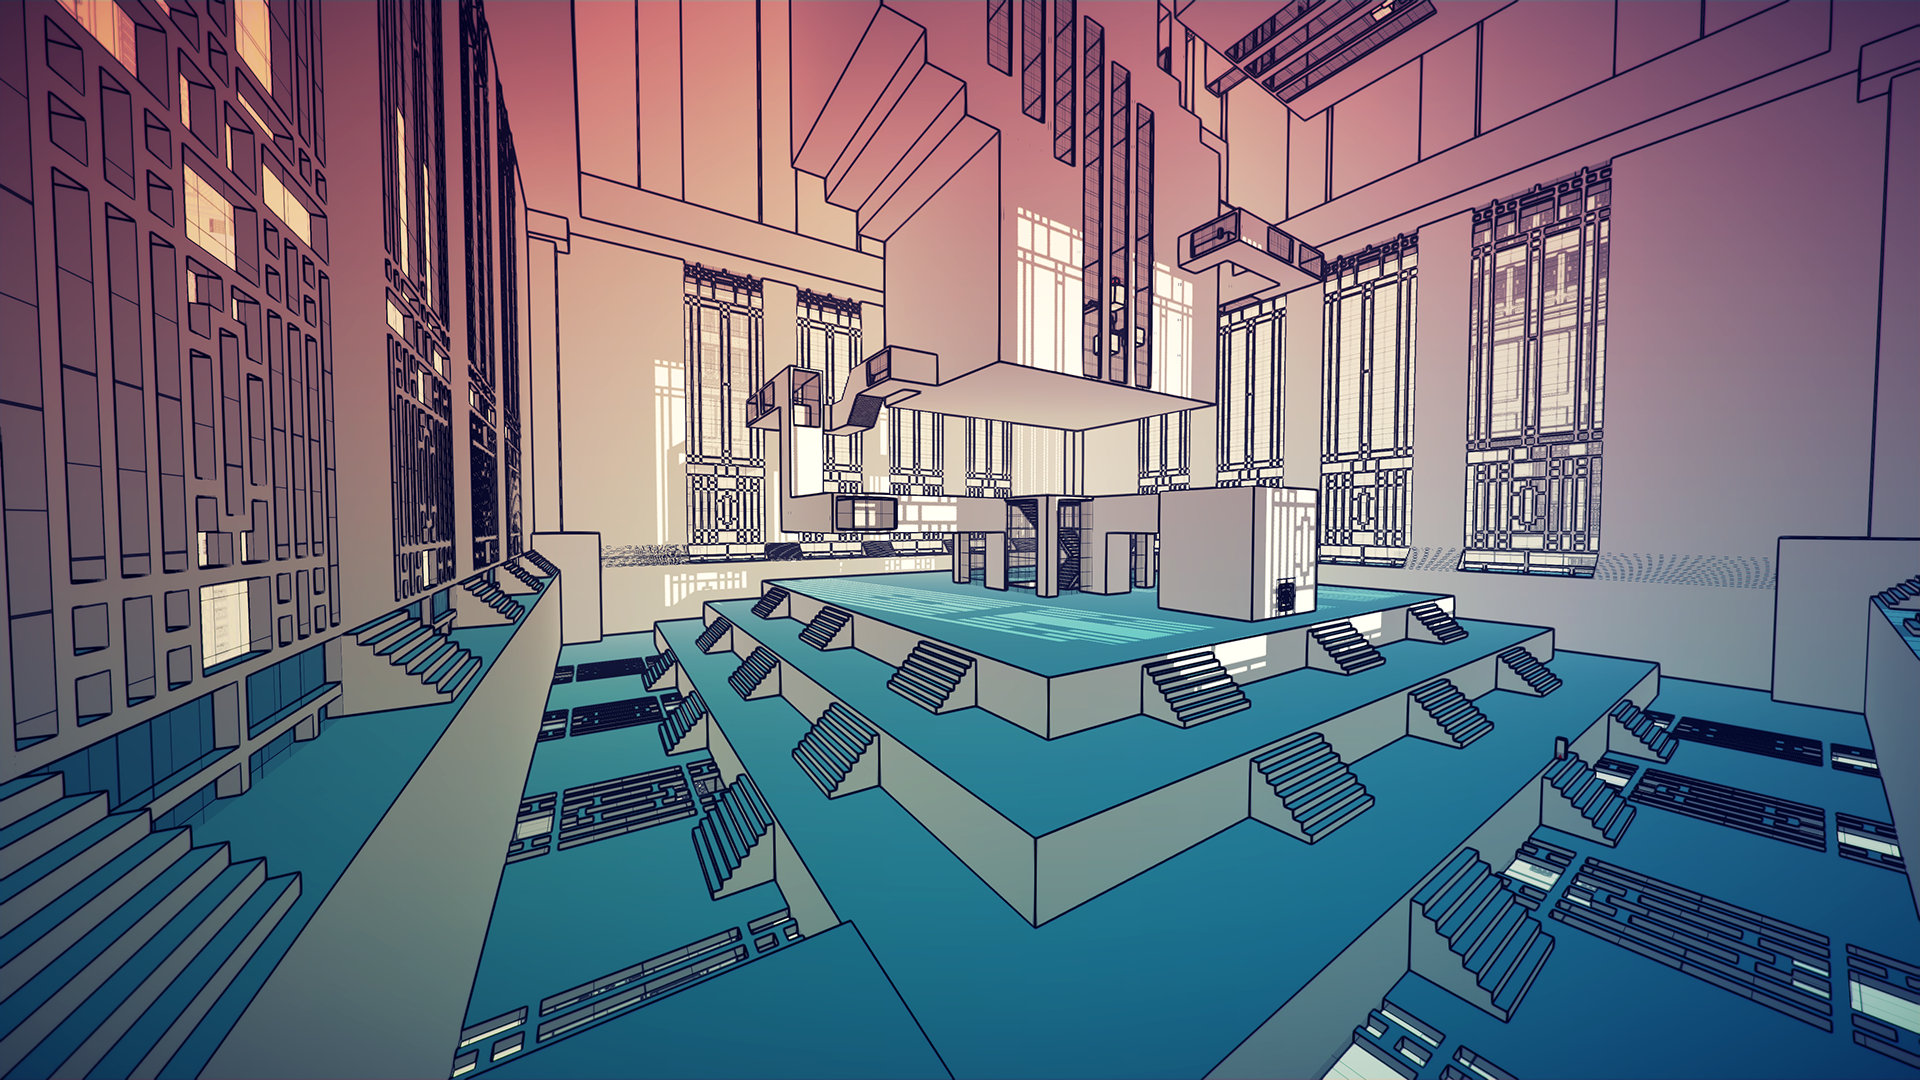 Manifold Garden Game | PS4 - PlayStation